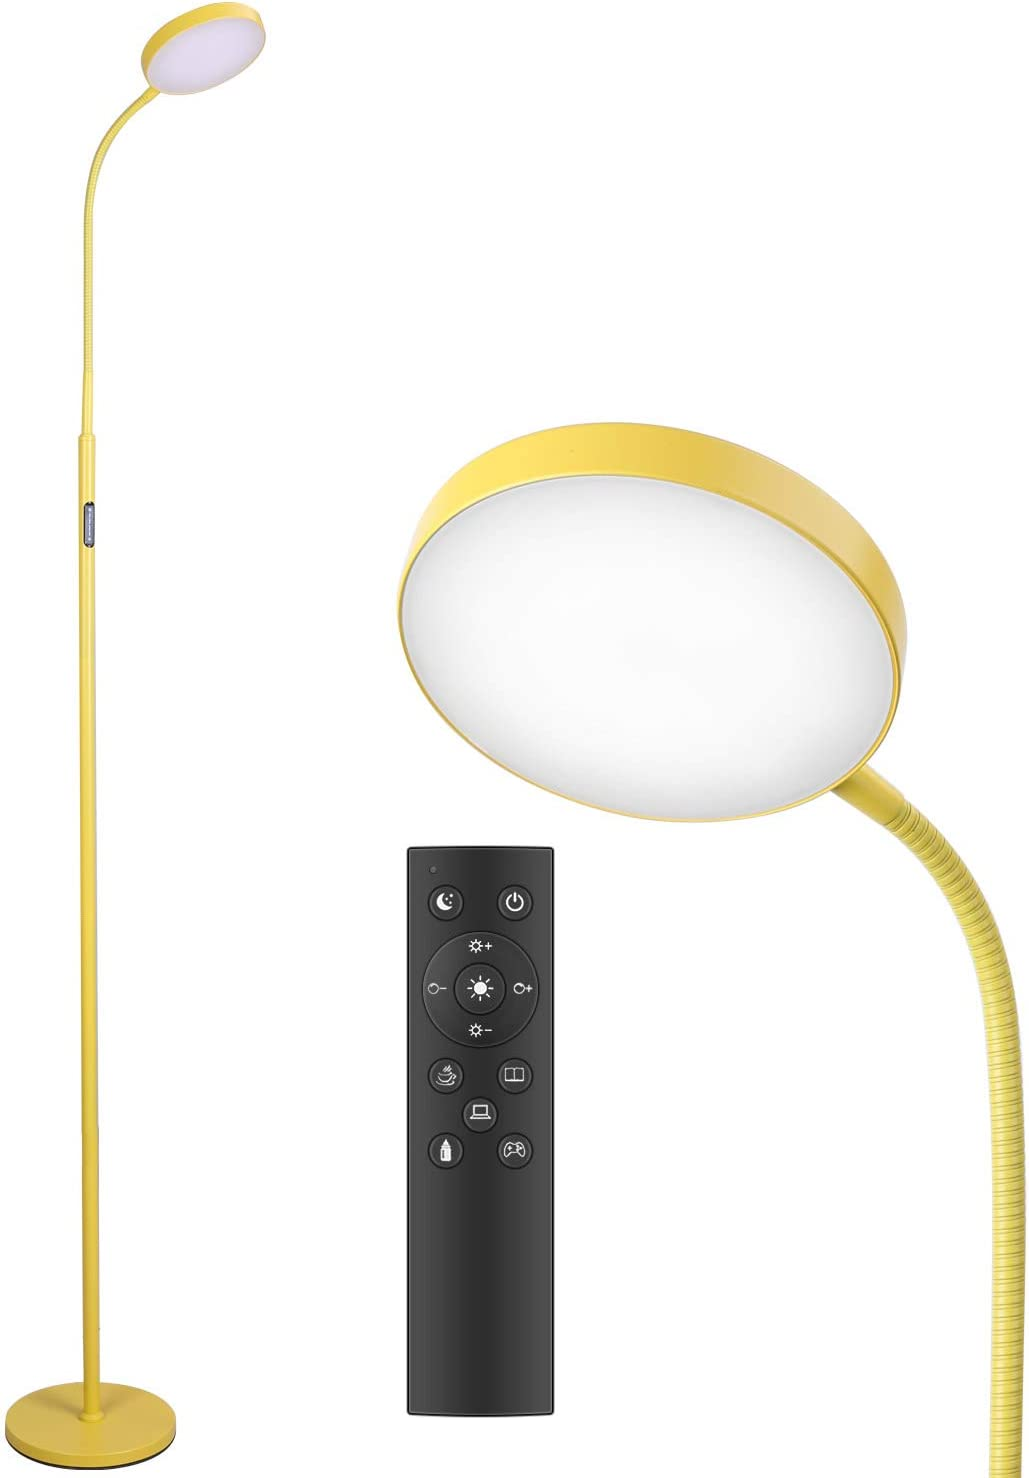 Floor Lamp - JOOFO LED Floor Lamp, Remote & Touch Control & 1 Hour Timer Reading Standing Lamp,4 Color Temperatures with Stepless Dimmer Floor Lamps for Living Room Bedroom Office (Yellow)